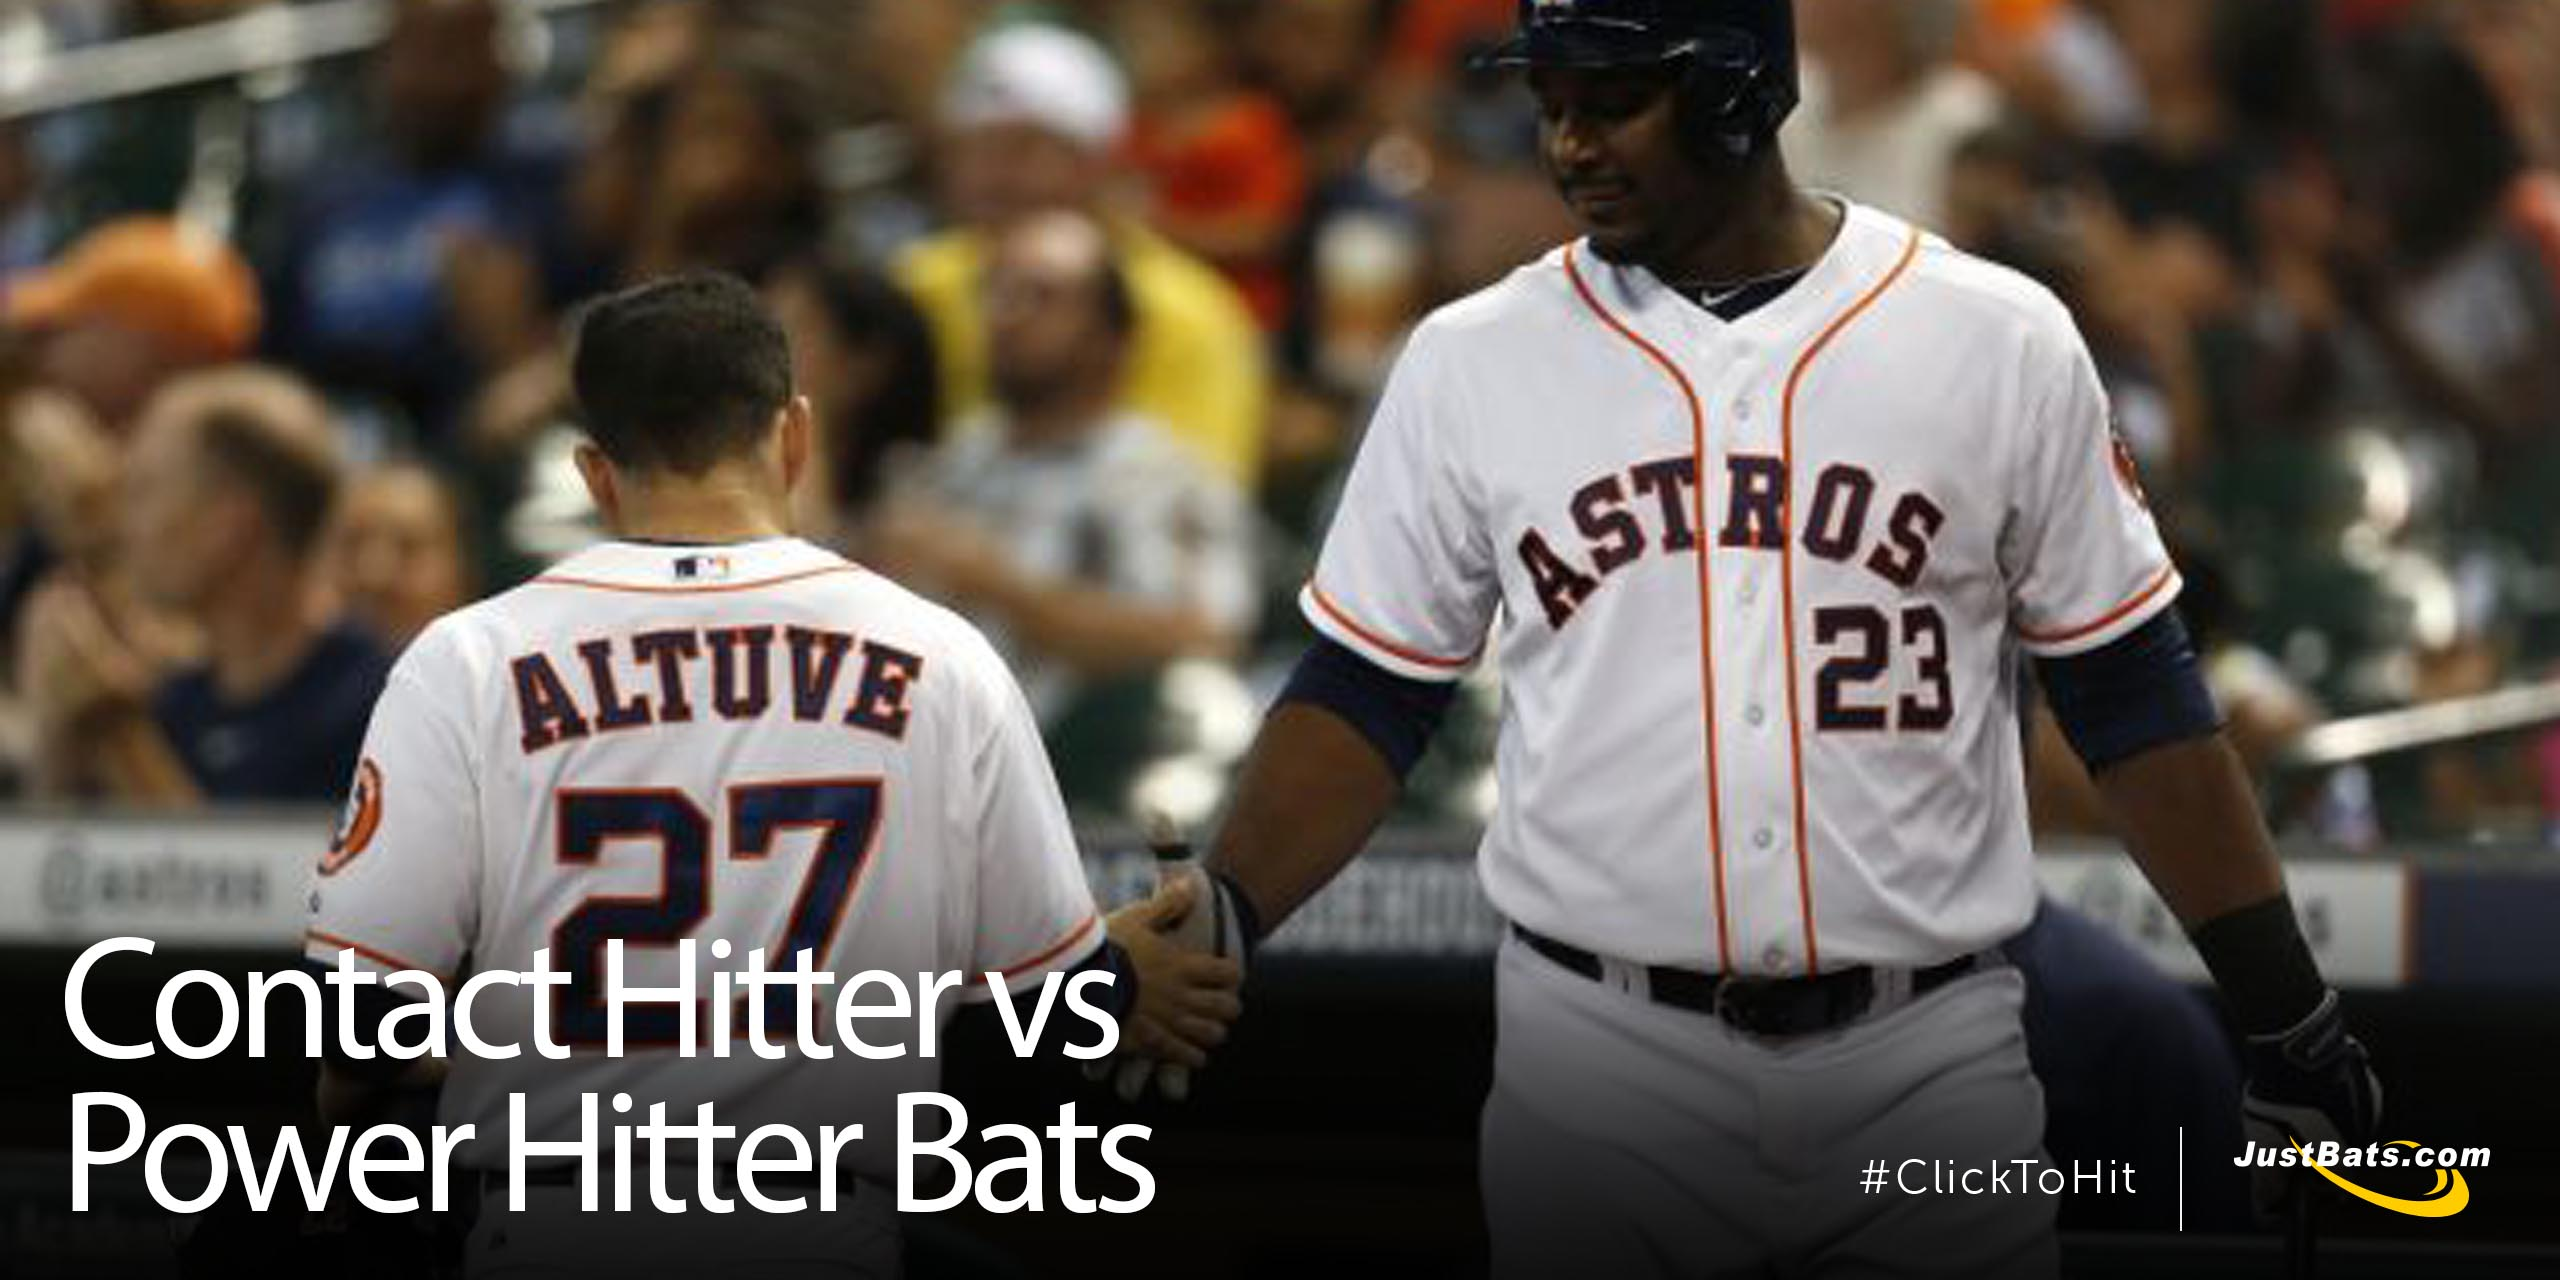 Contact Hitter vs Power Hitter Bats - Blog.jpg